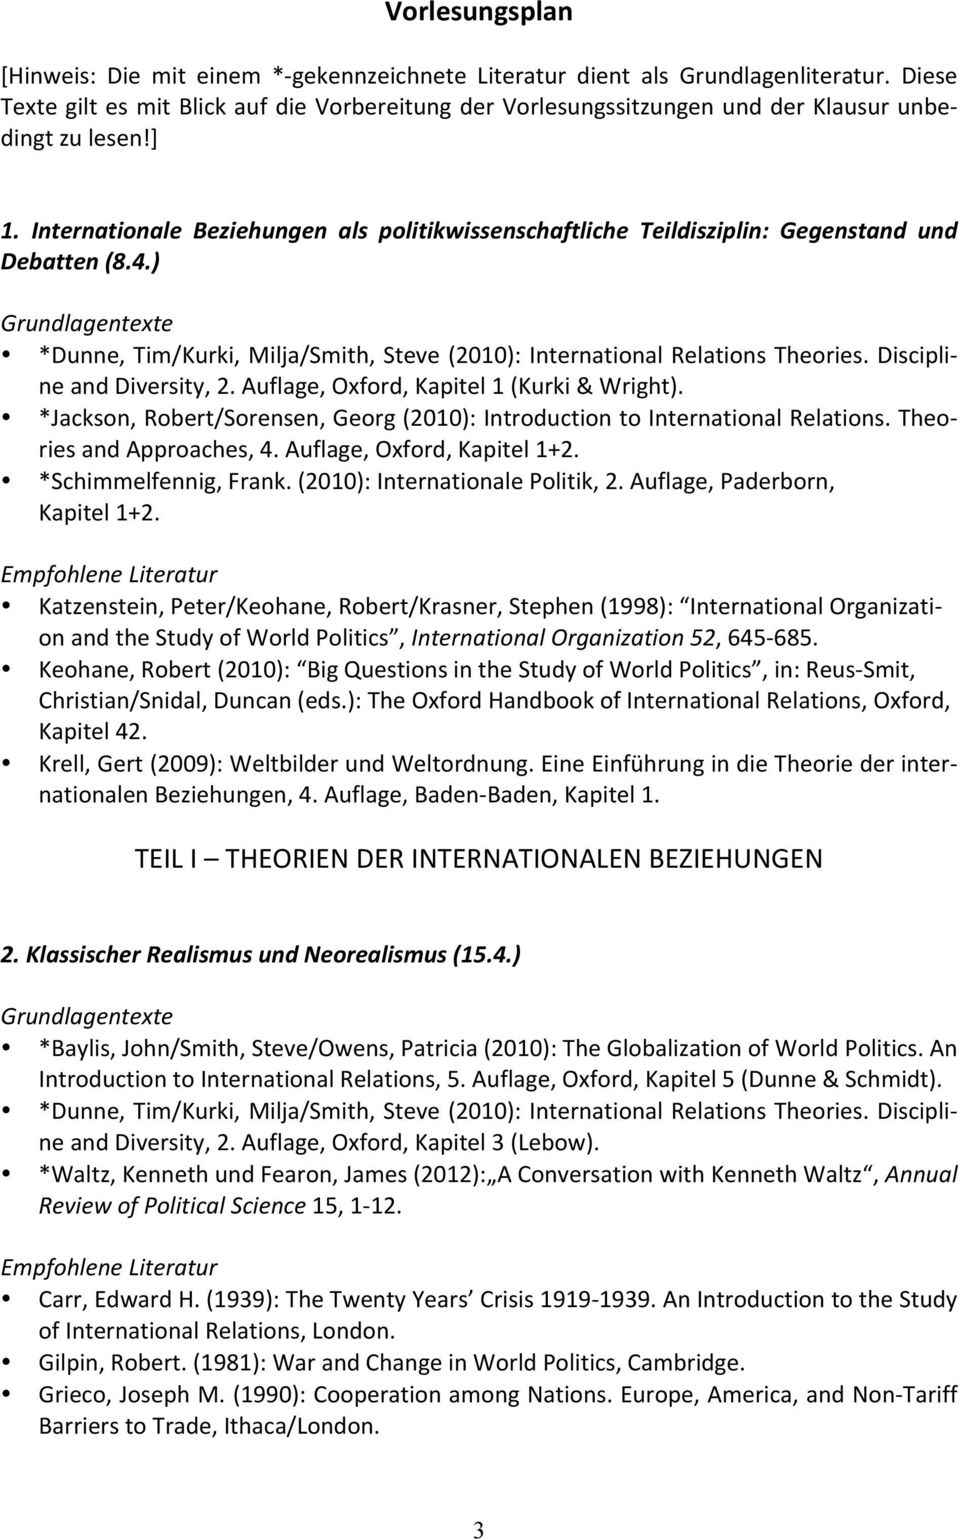 Internationale Beziehungen als politikwissenschaftliche Teildisziplin: Gegenstand und Debatten (8.4.) *Dunne, Tim/Kurki, Milja/Smith, Steve (2010): International Relations Theories.